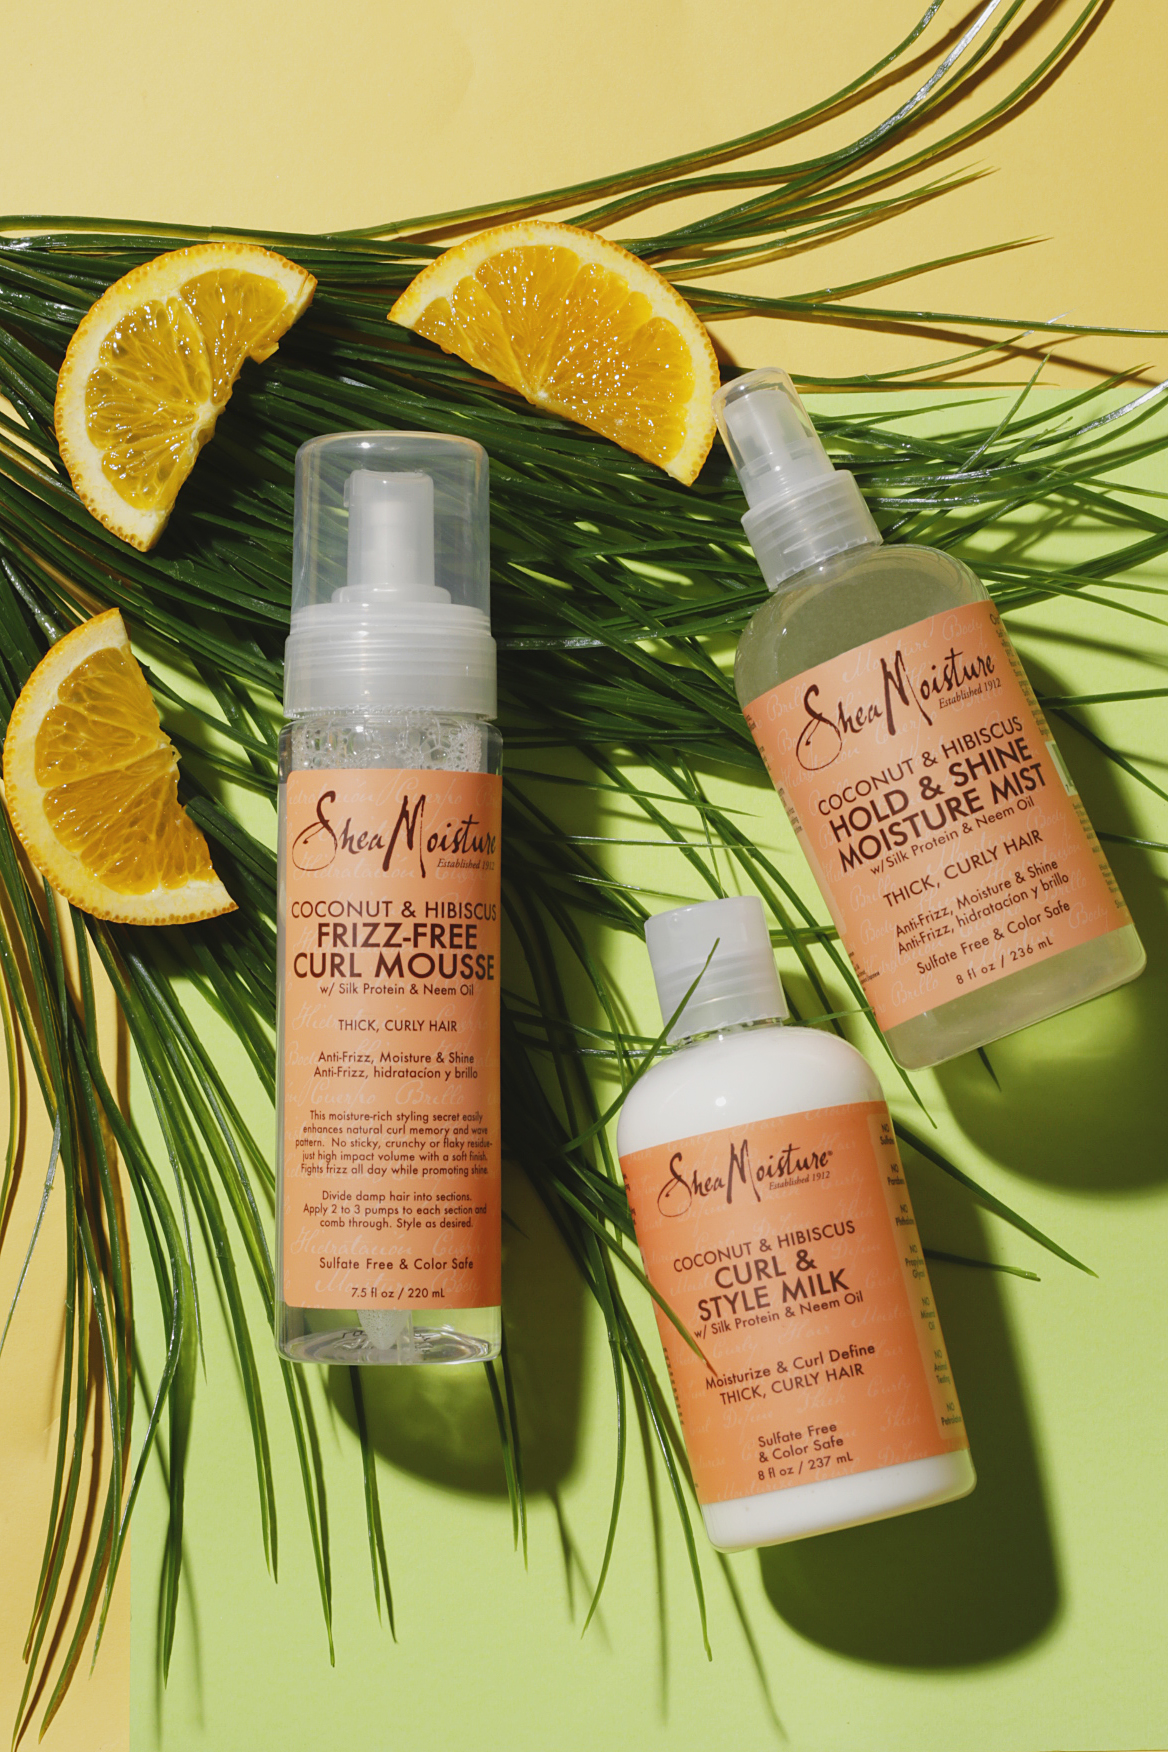 shea moisture products try for summer